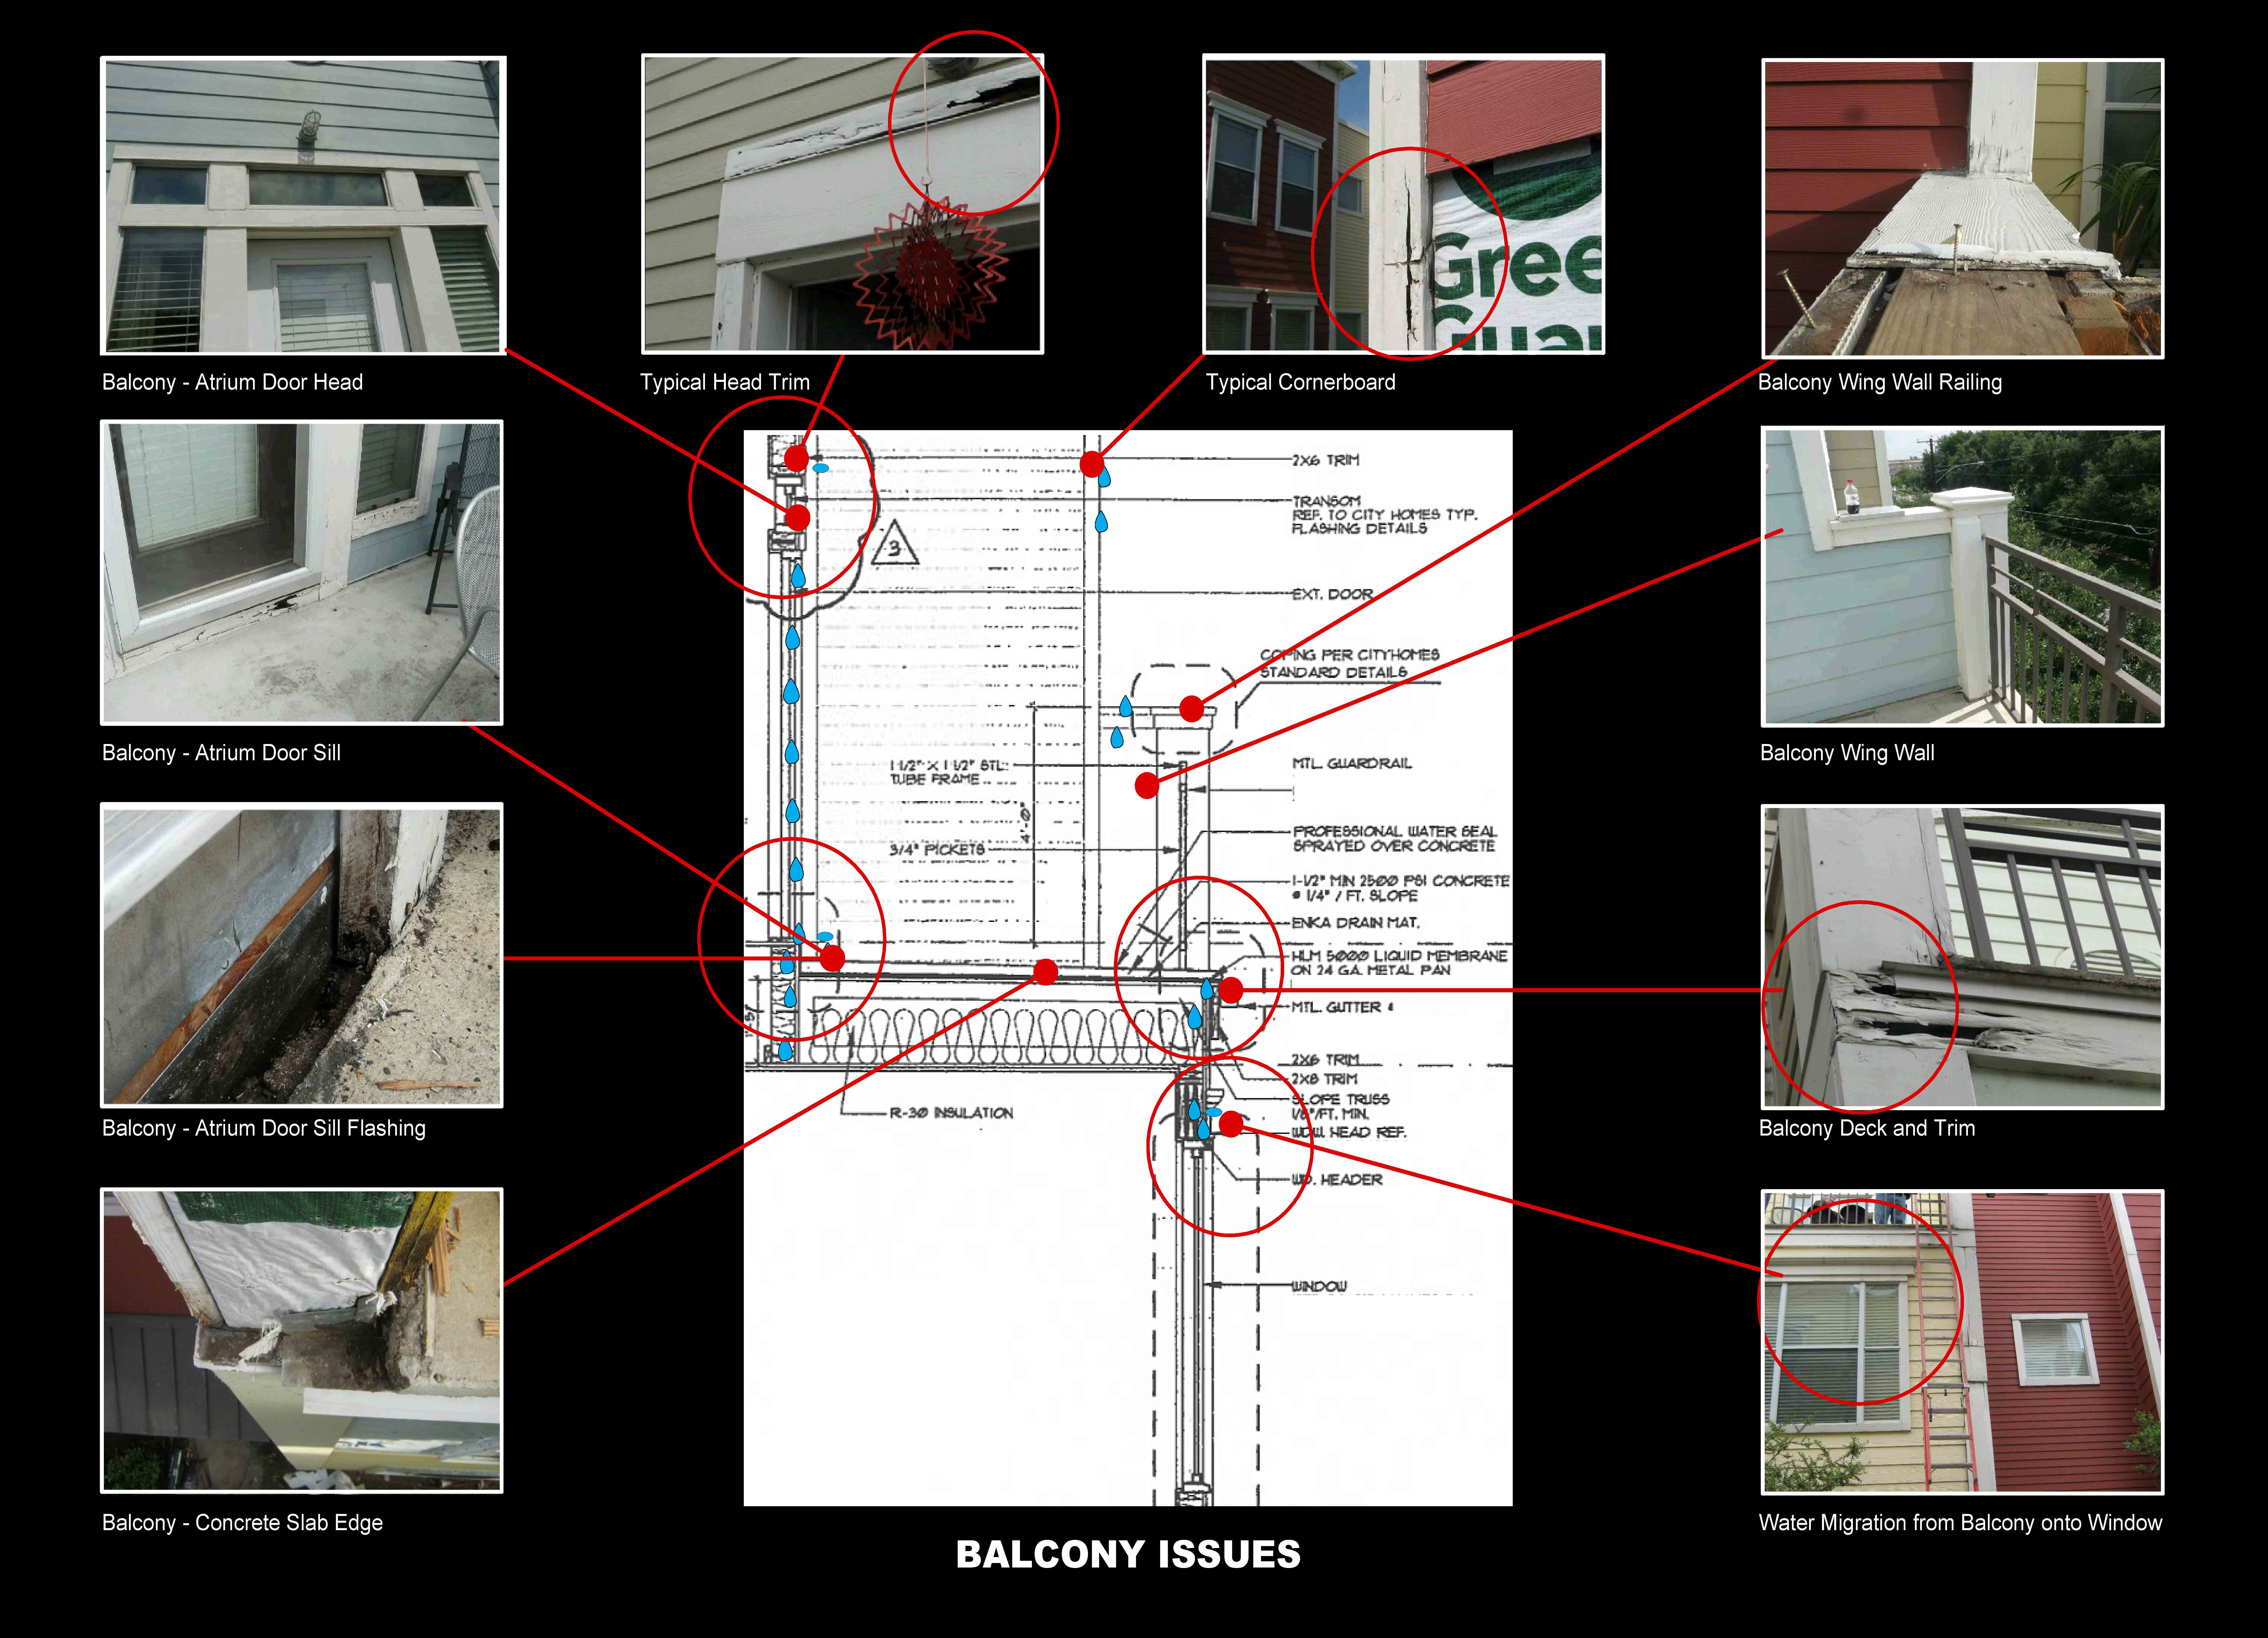 Common Balcony Issues: Water Intrusion Due to Construction Defects